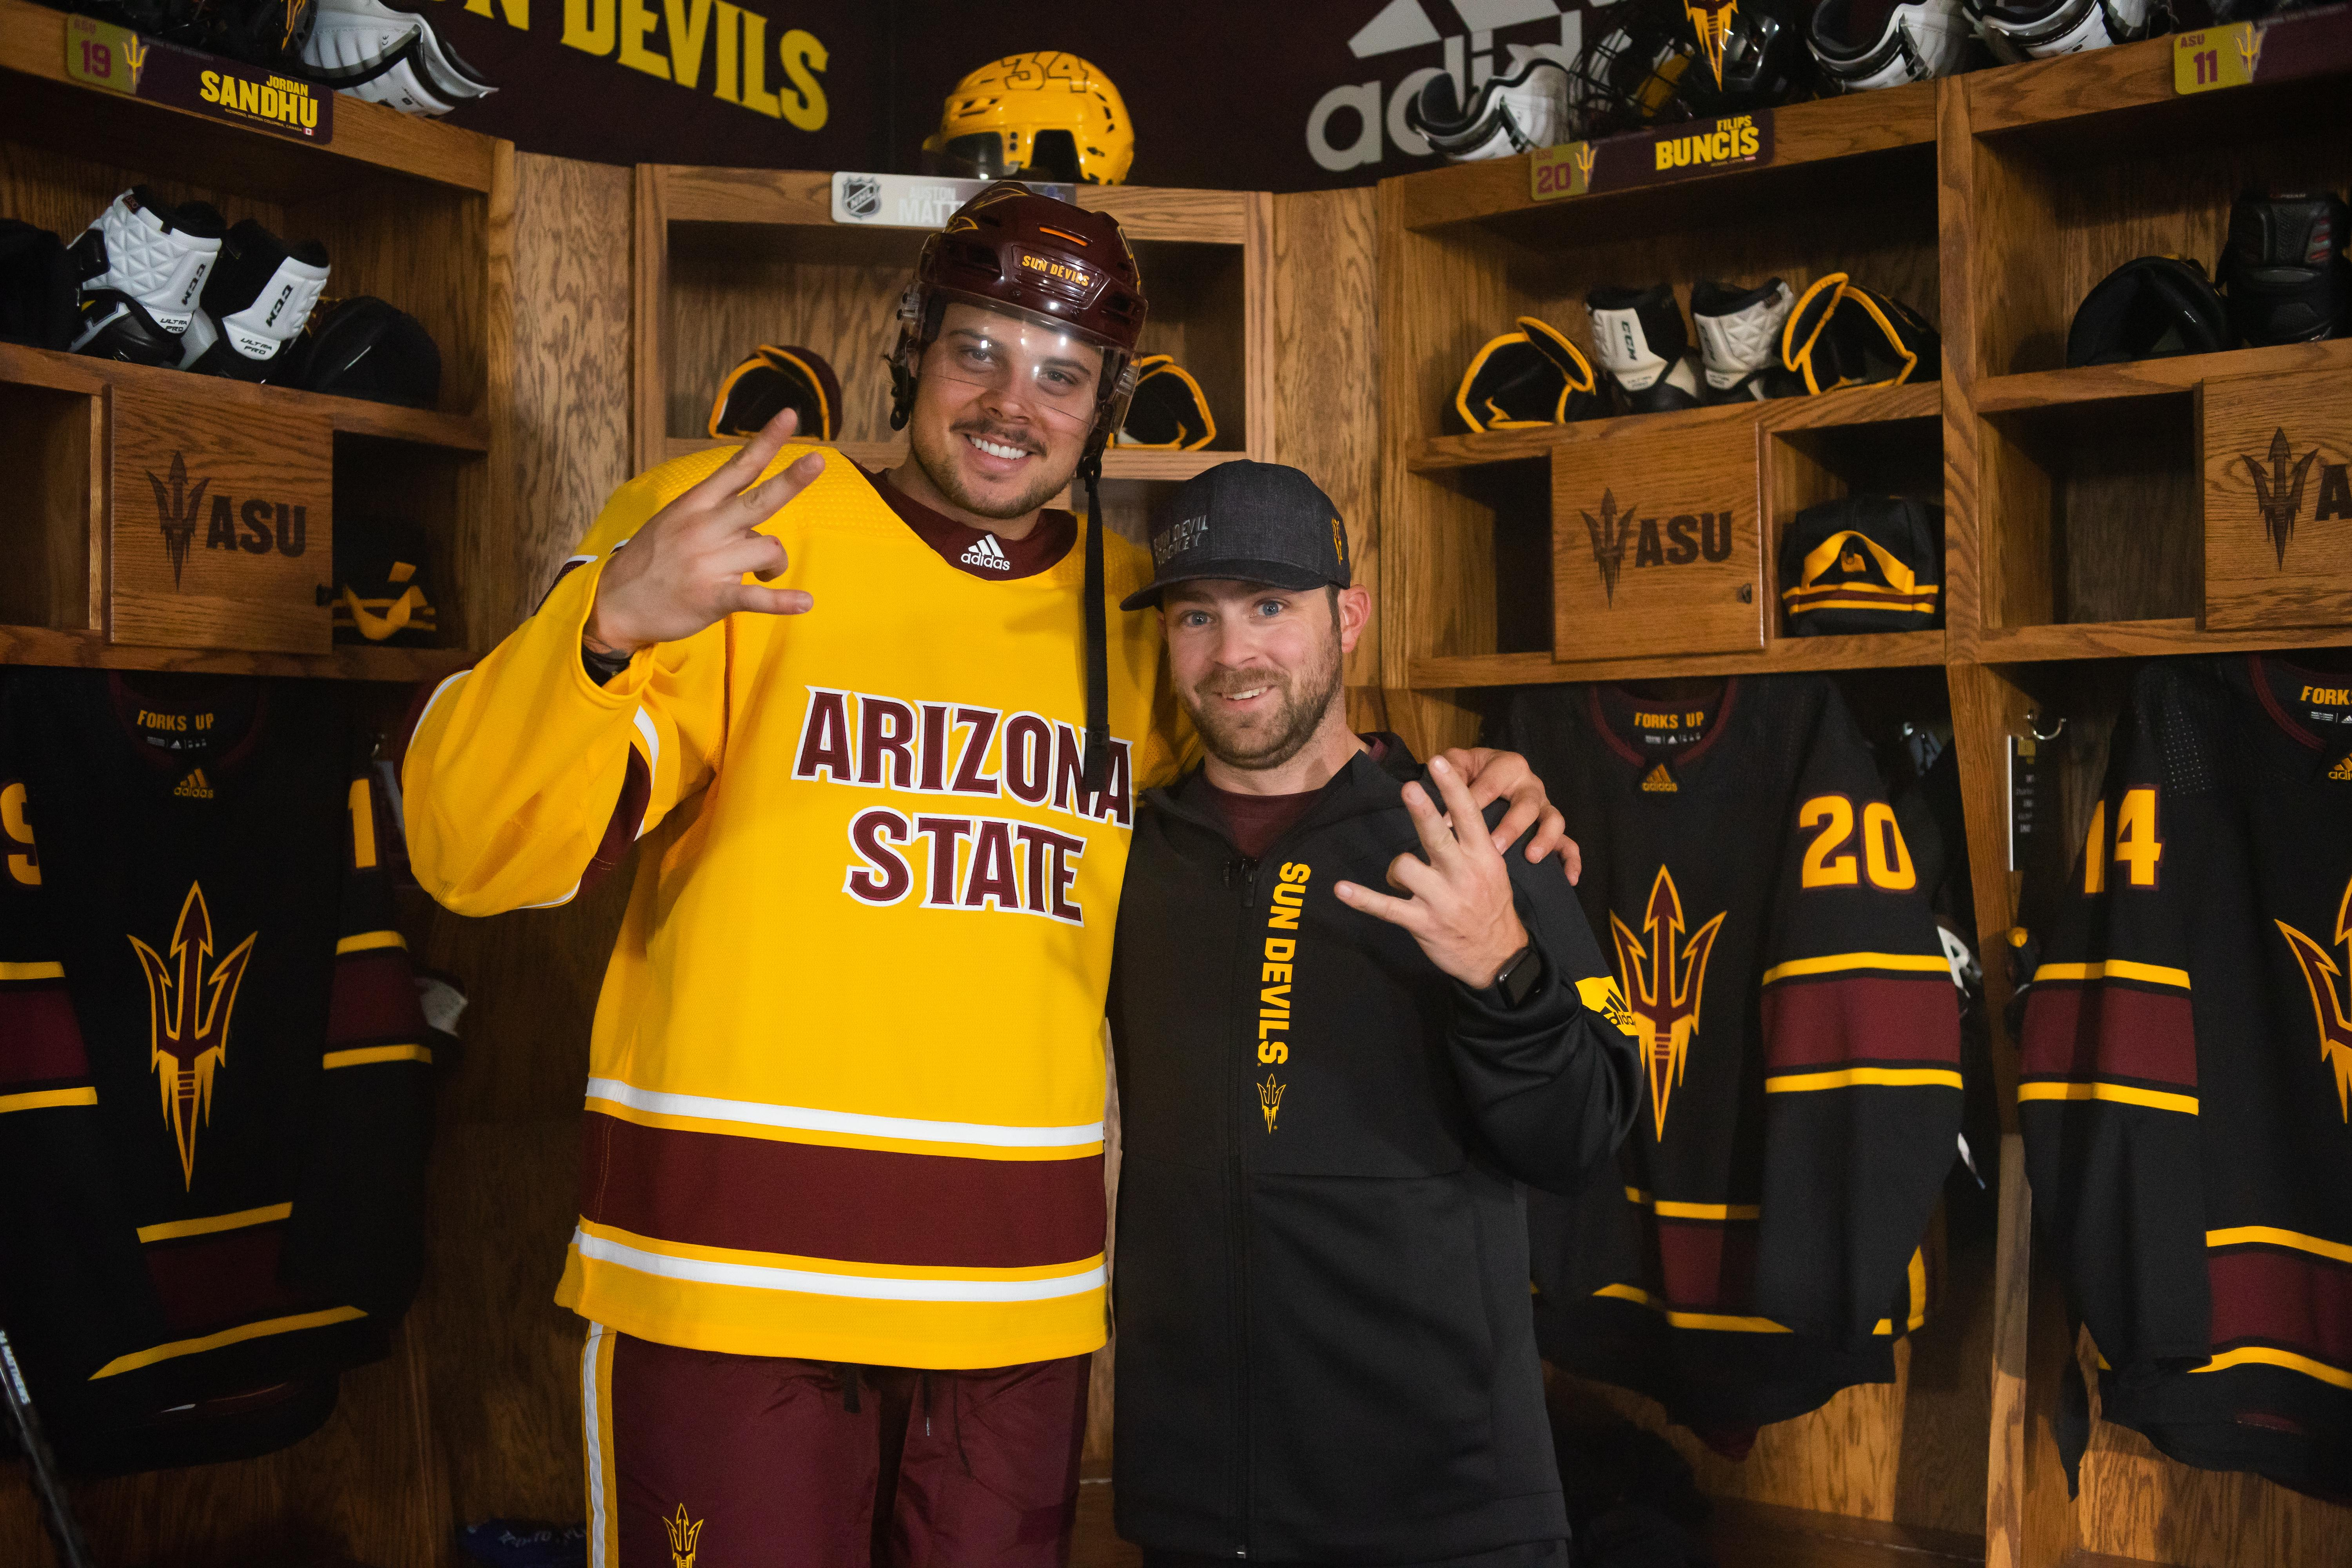 Auston Matthews ASU Hockey